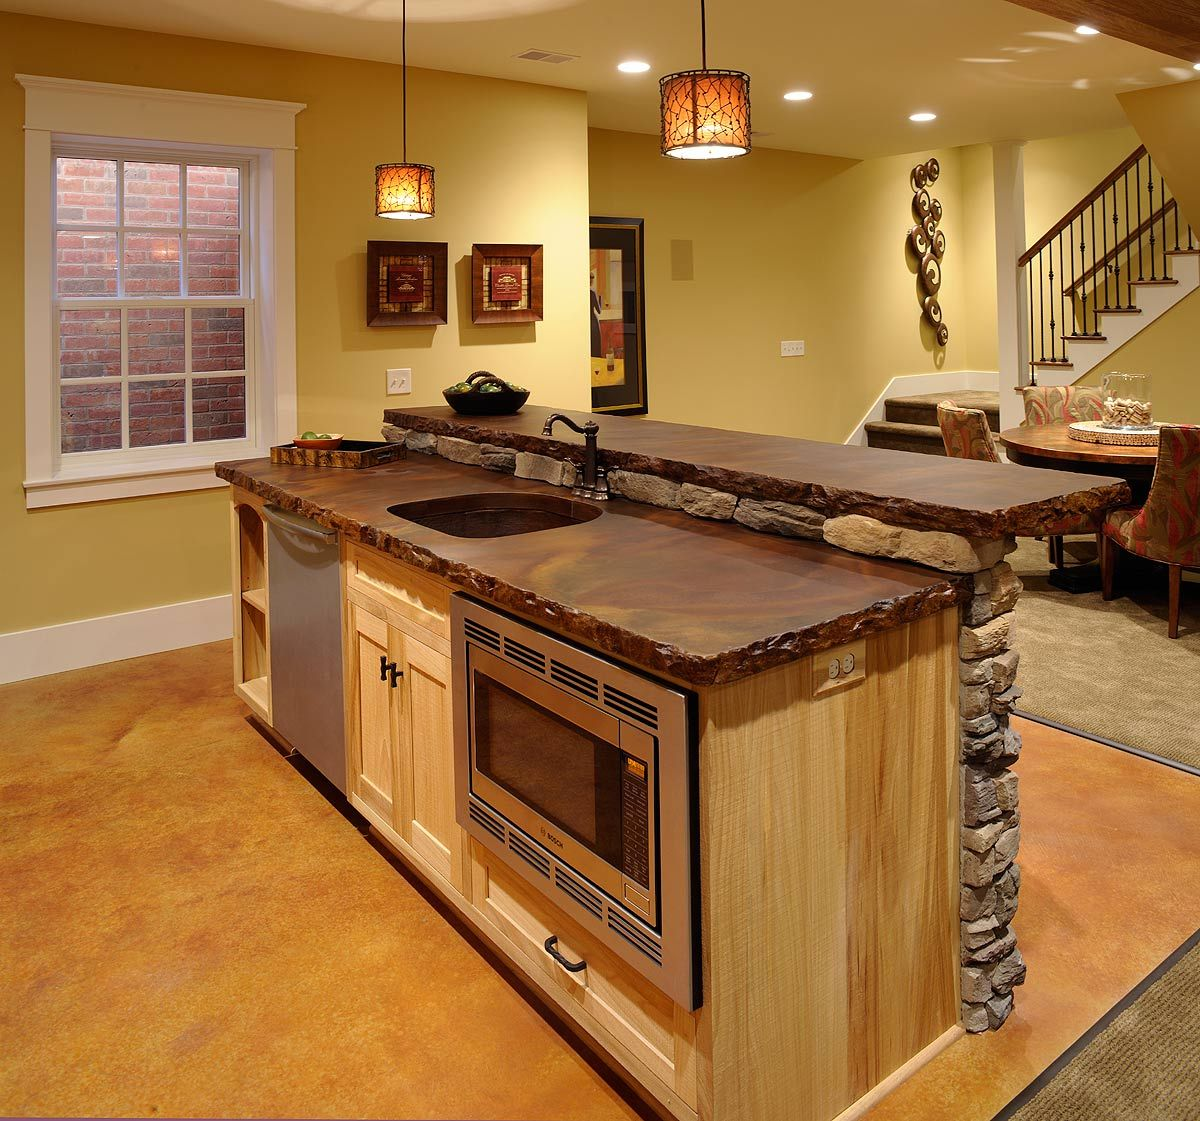 Good Island Countertop Ideas Part - 14: Like The Bar/countertop. What Material Is That Countertop? Basement  +renovation +basement Design, Pictures, Remodel, Decor And Ideas - Page 5